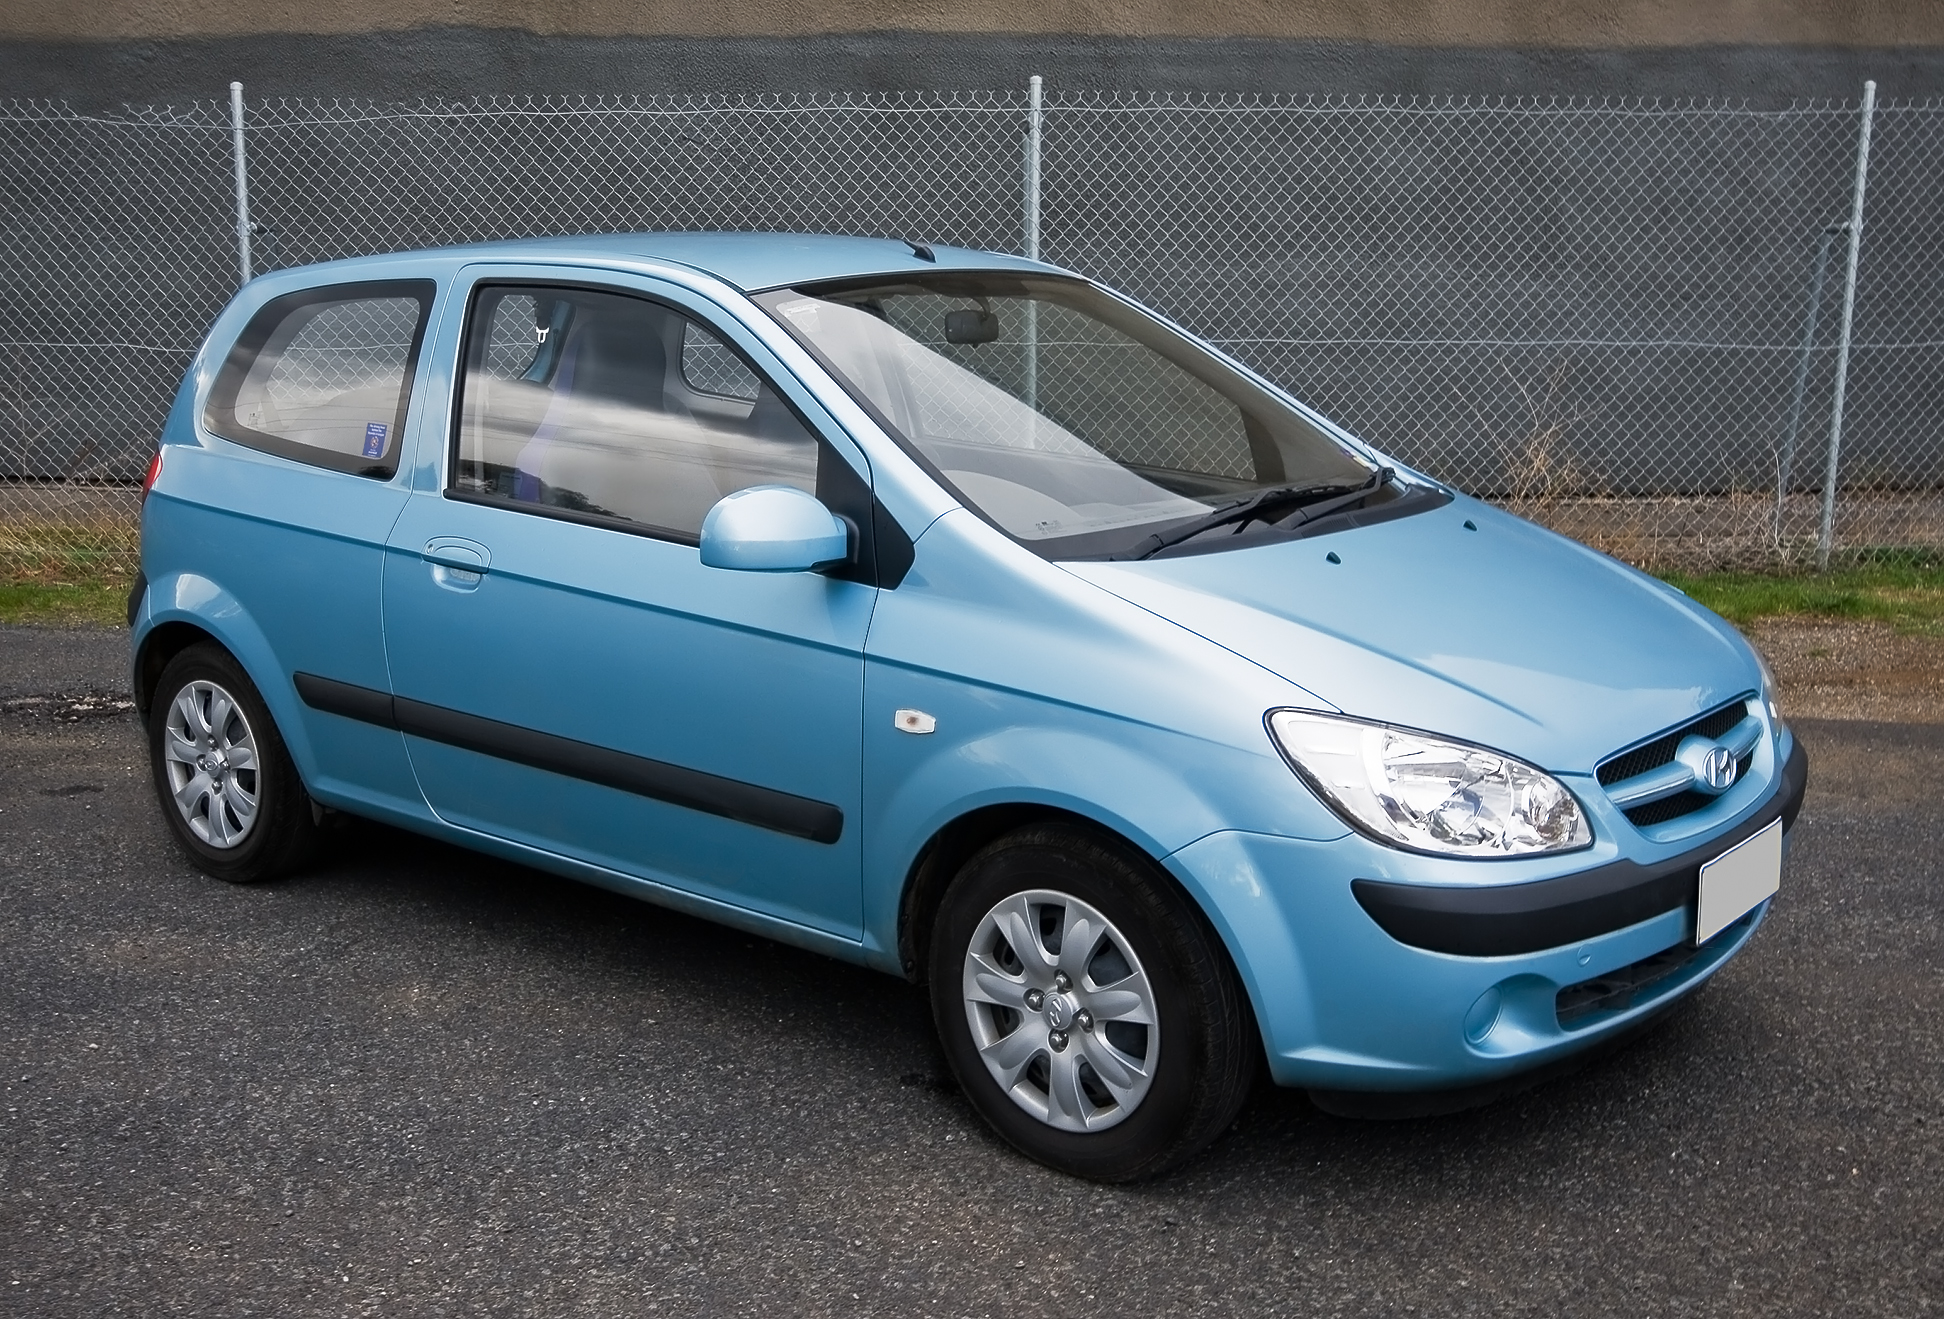 Hyundai Getz Wikipedia Wiring Diagram Of Grace Facelift 16 3 Door Australia